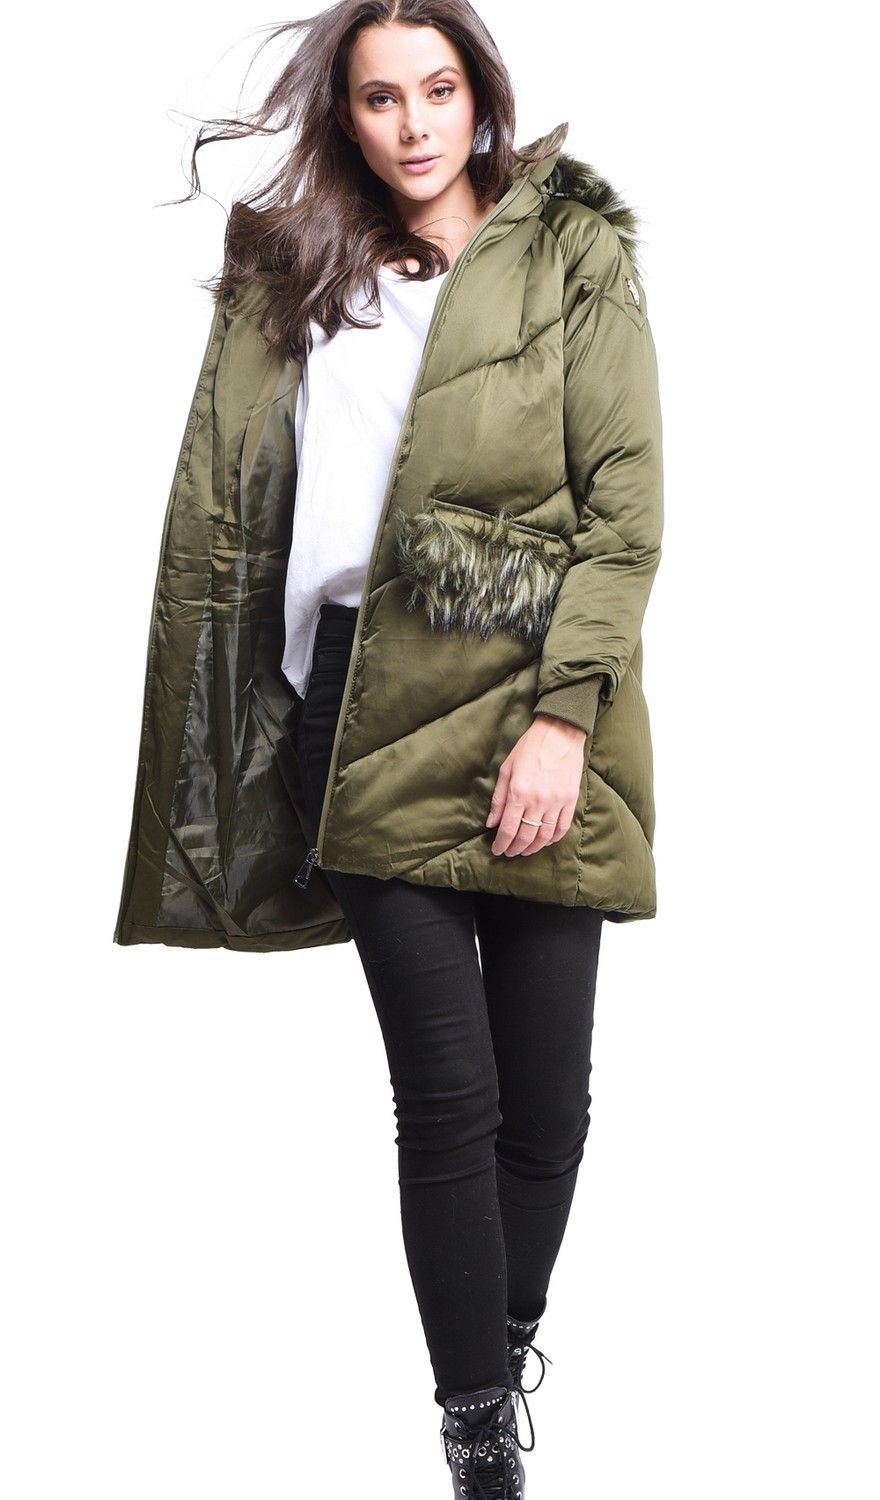 Assuili Long Puffer Jacket with Faux Fur Panel in Khaki